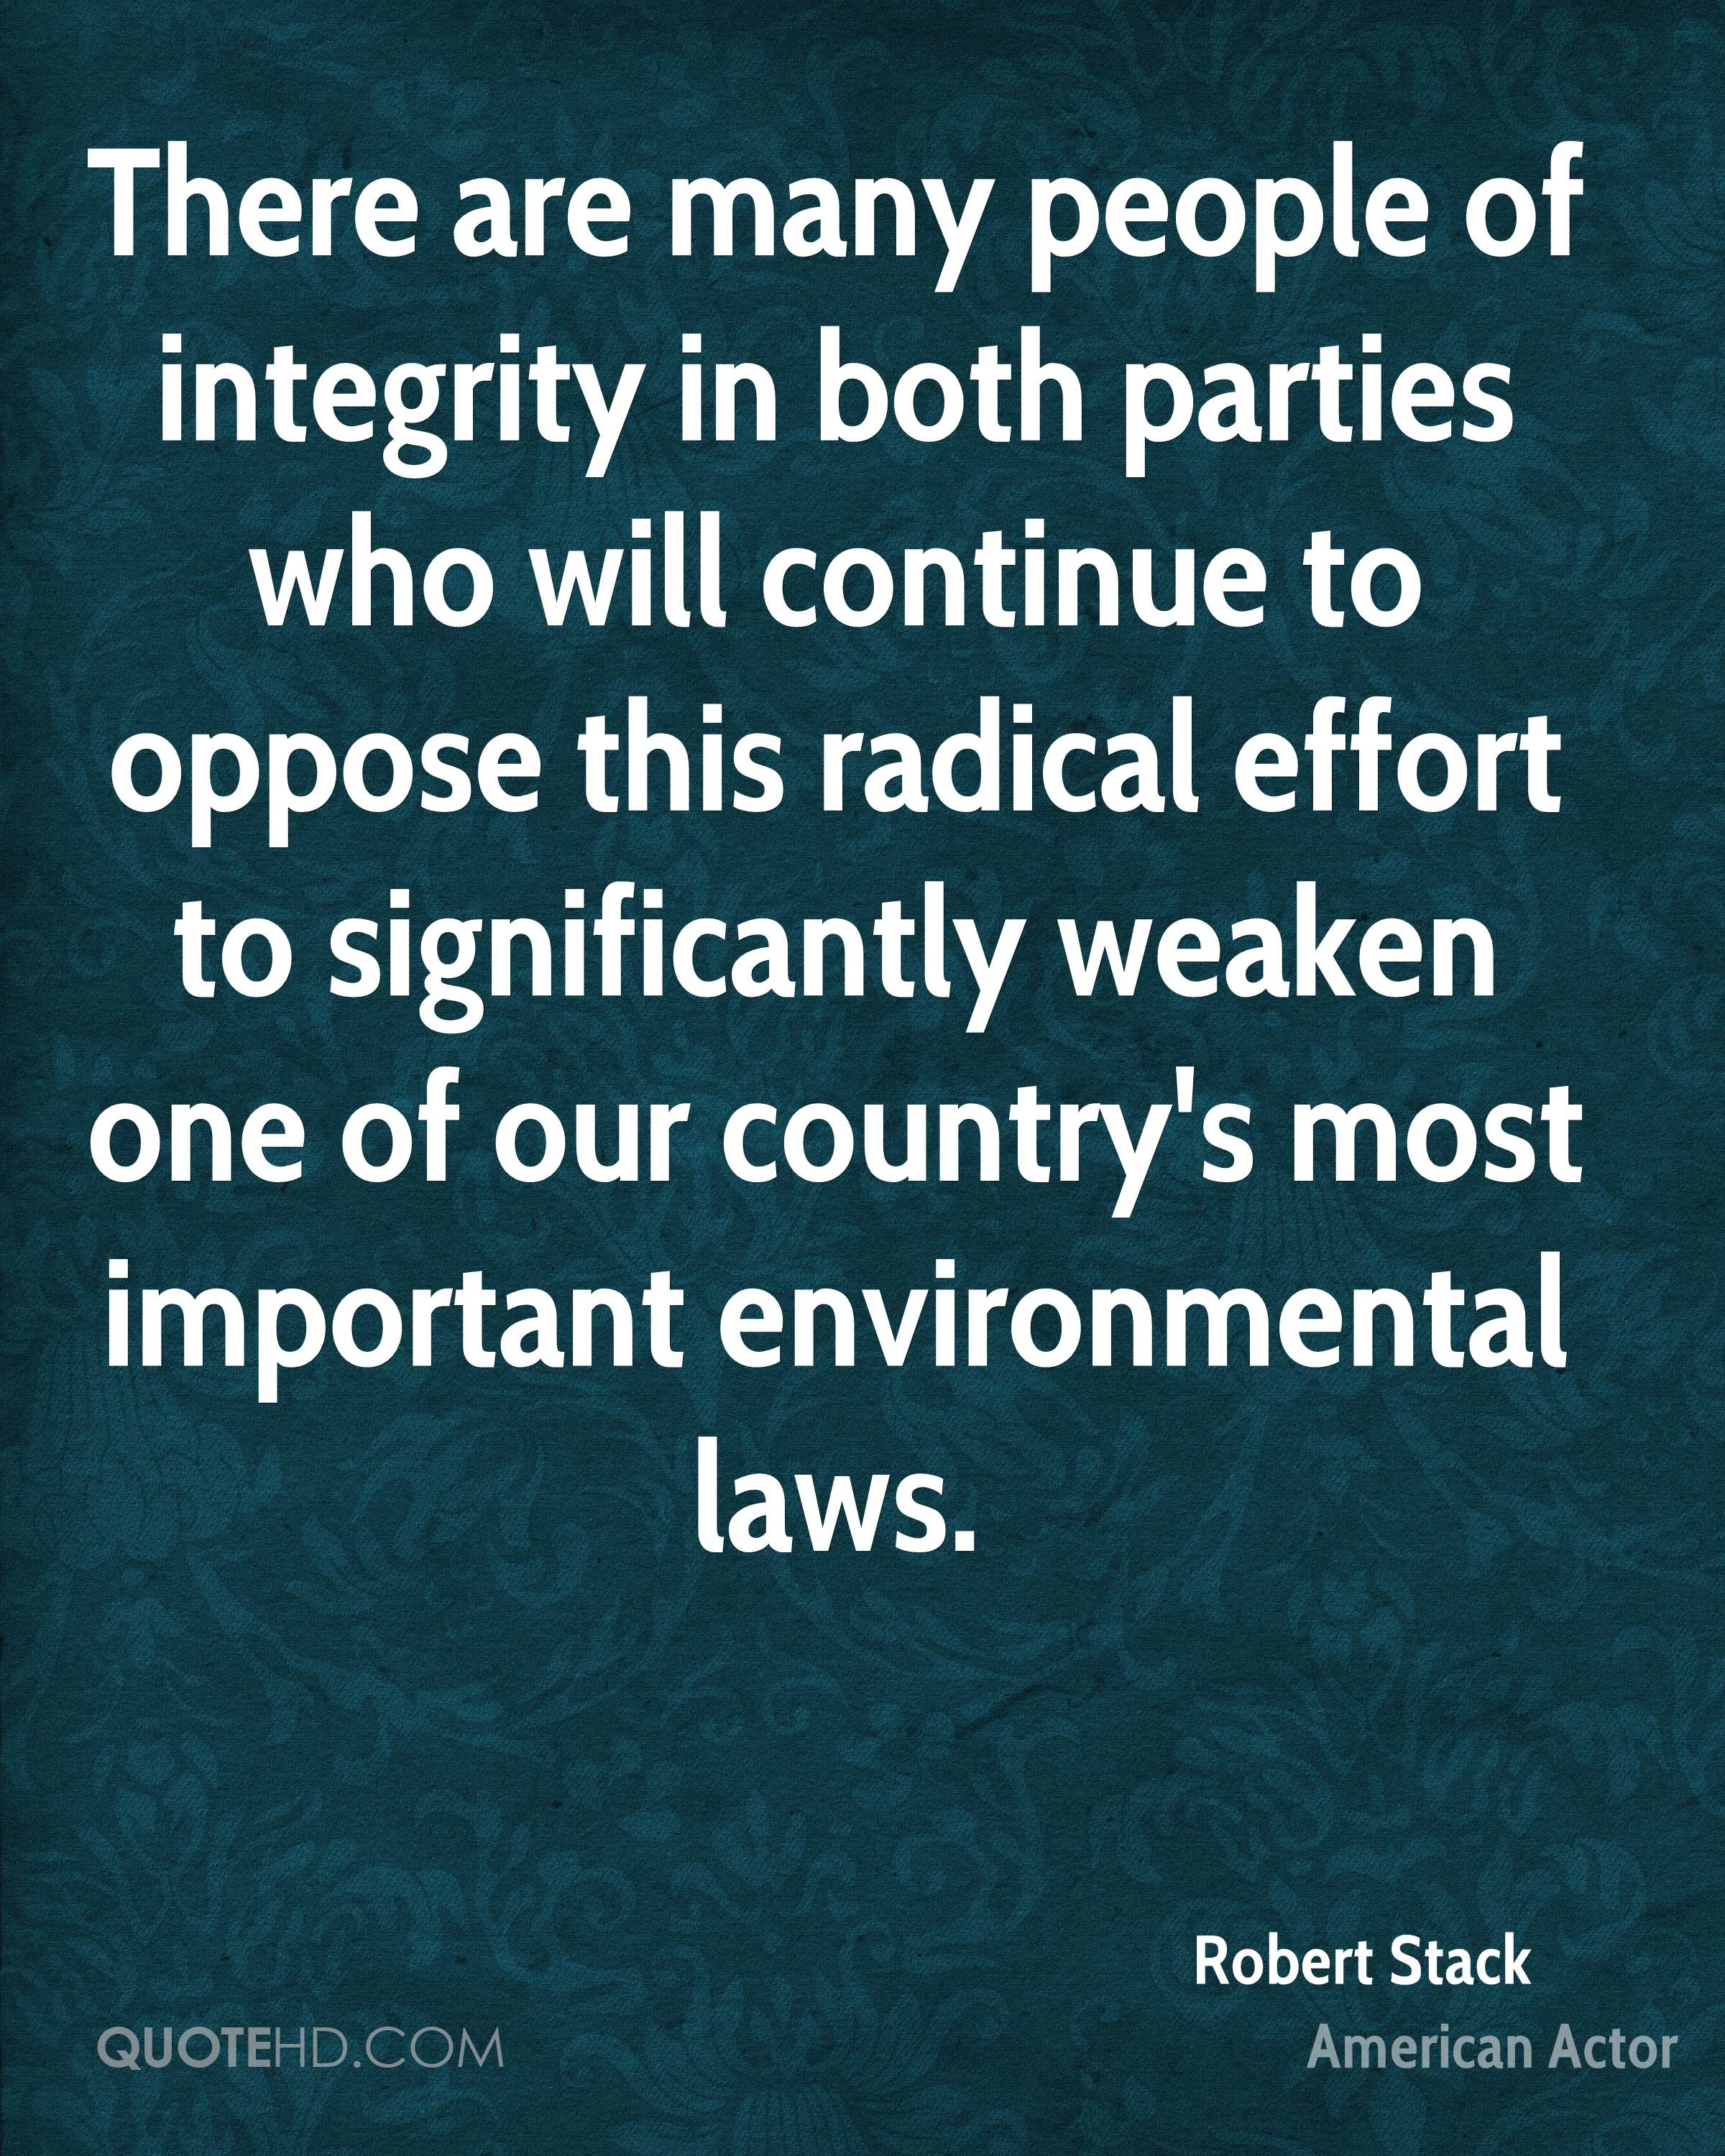 There are many people of integrity in both parties who will continue to oppose this radical effort to significantly weaken one of our country's most important environmental laws.